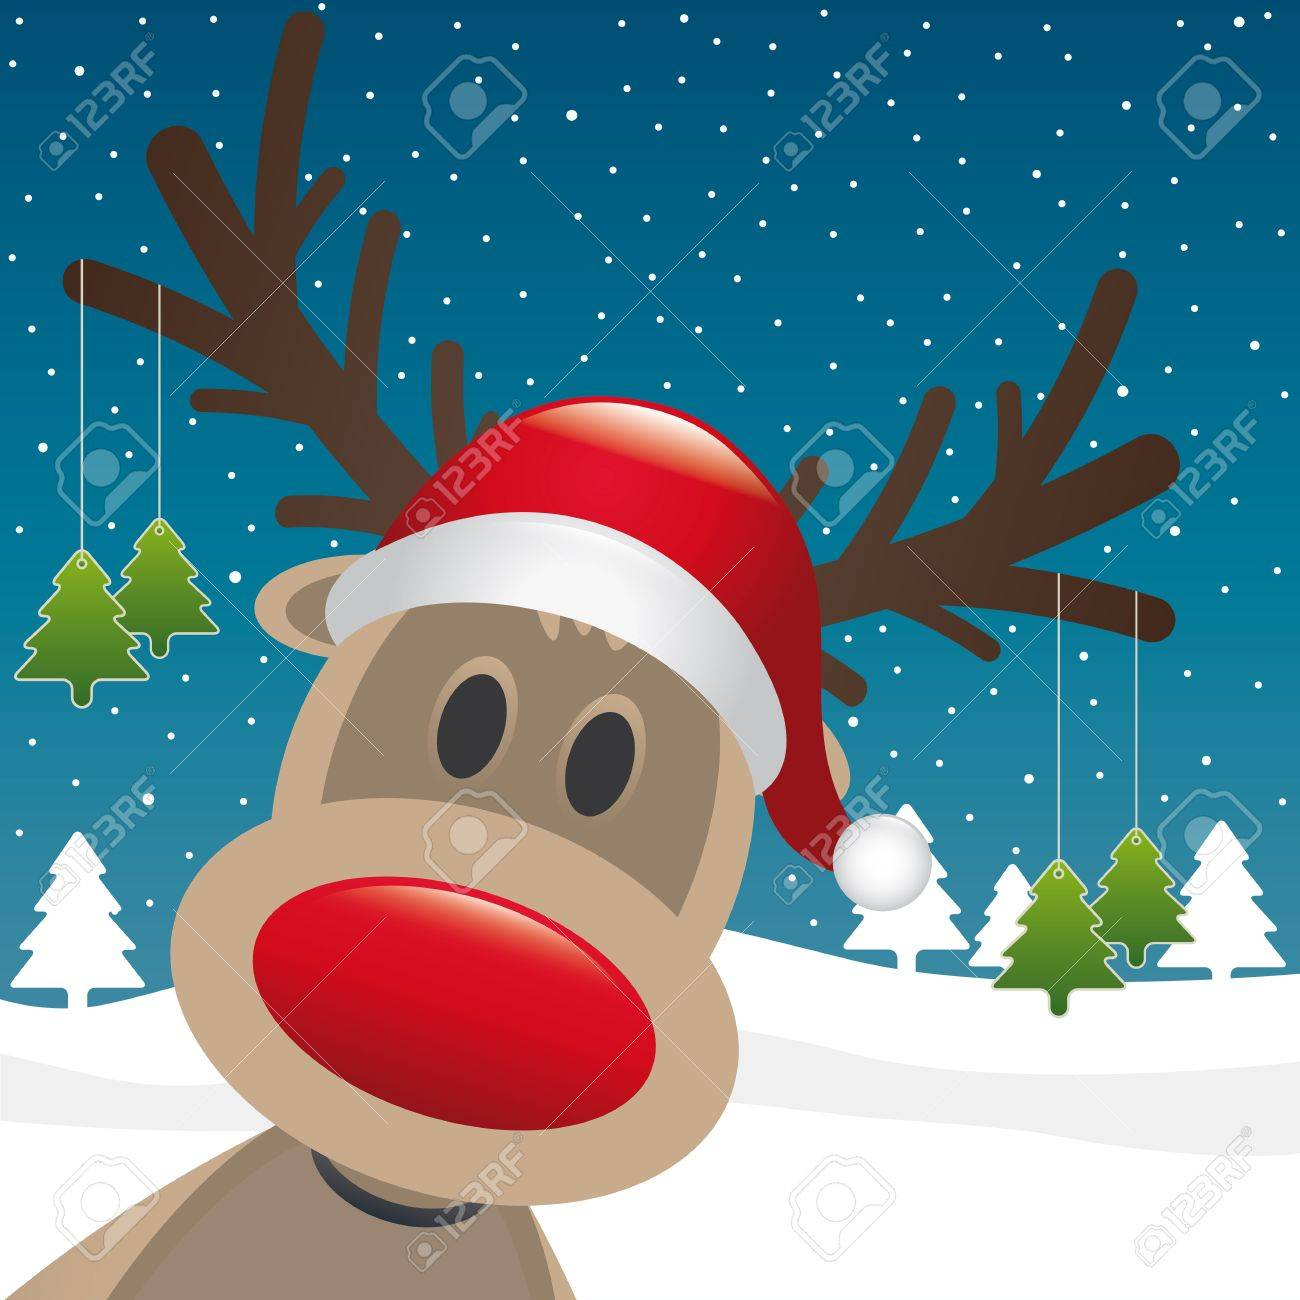 Rudolph Reindeer Red Nose Hang Christmas Tree Stock Photo, Picture ...